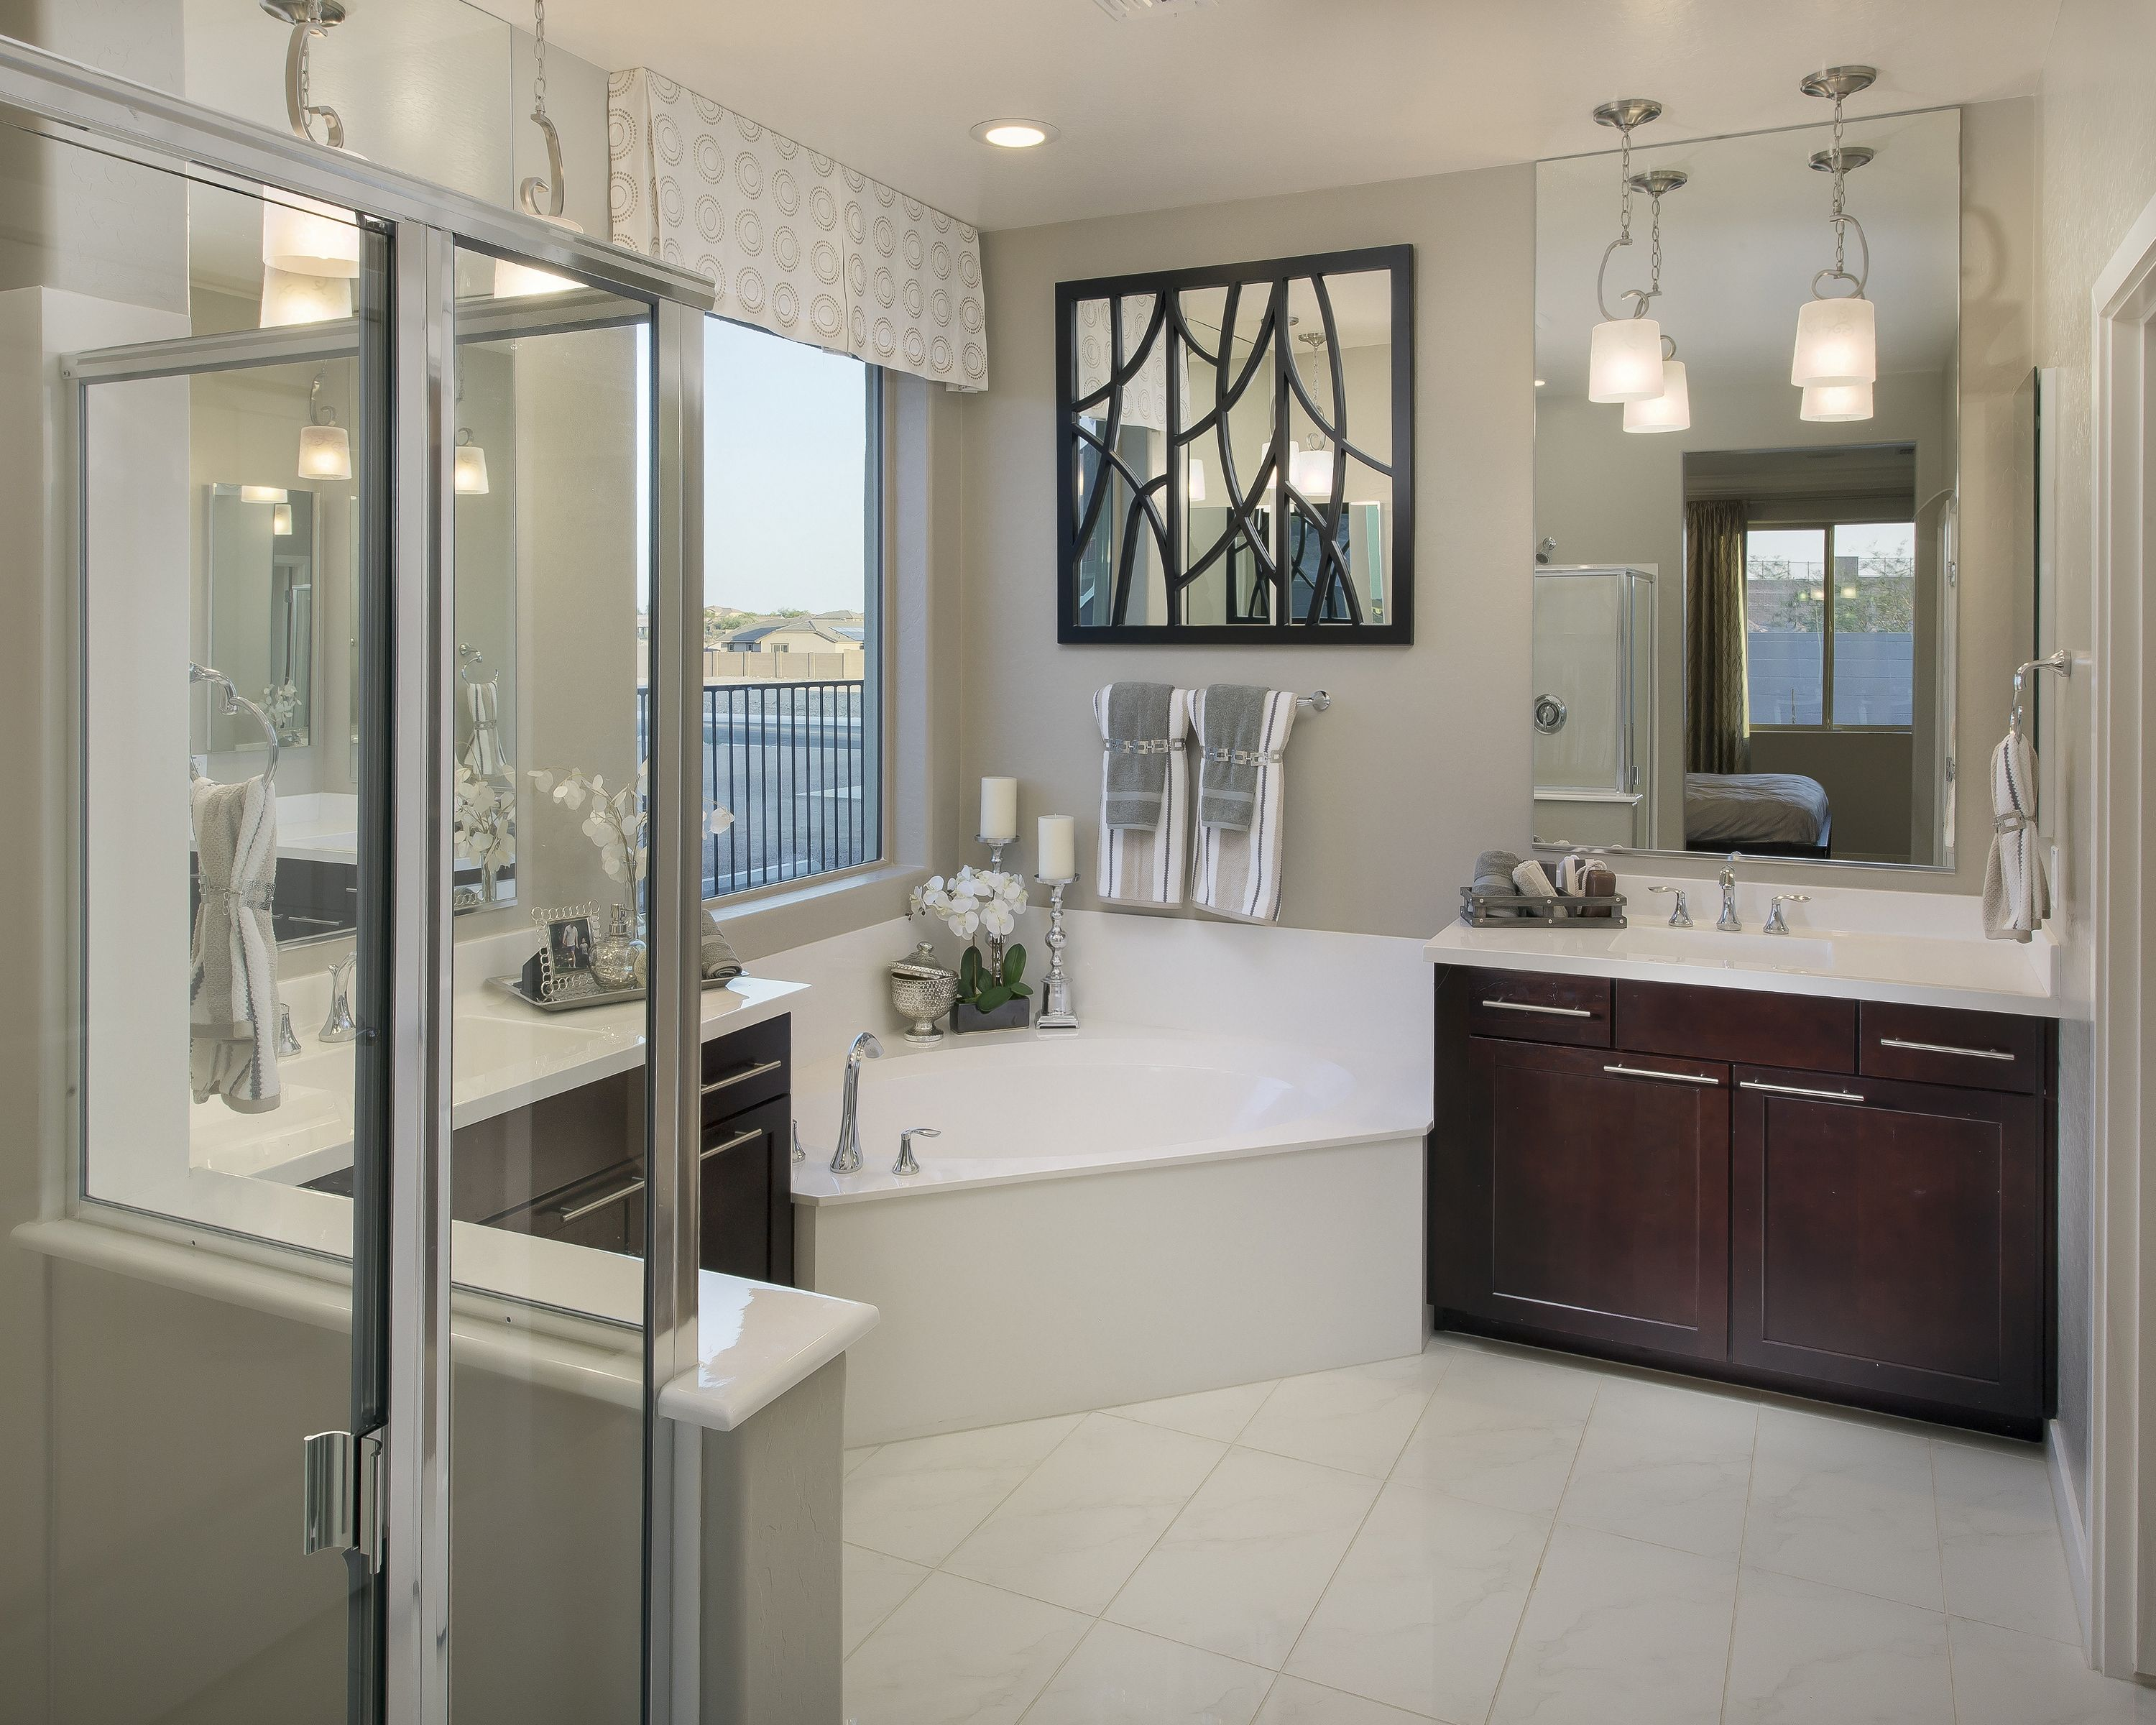 The Palo Verde Plan At Arroyo Norte Phoenix Az Bathrooms Pinterest Palo Verde And Phoenix